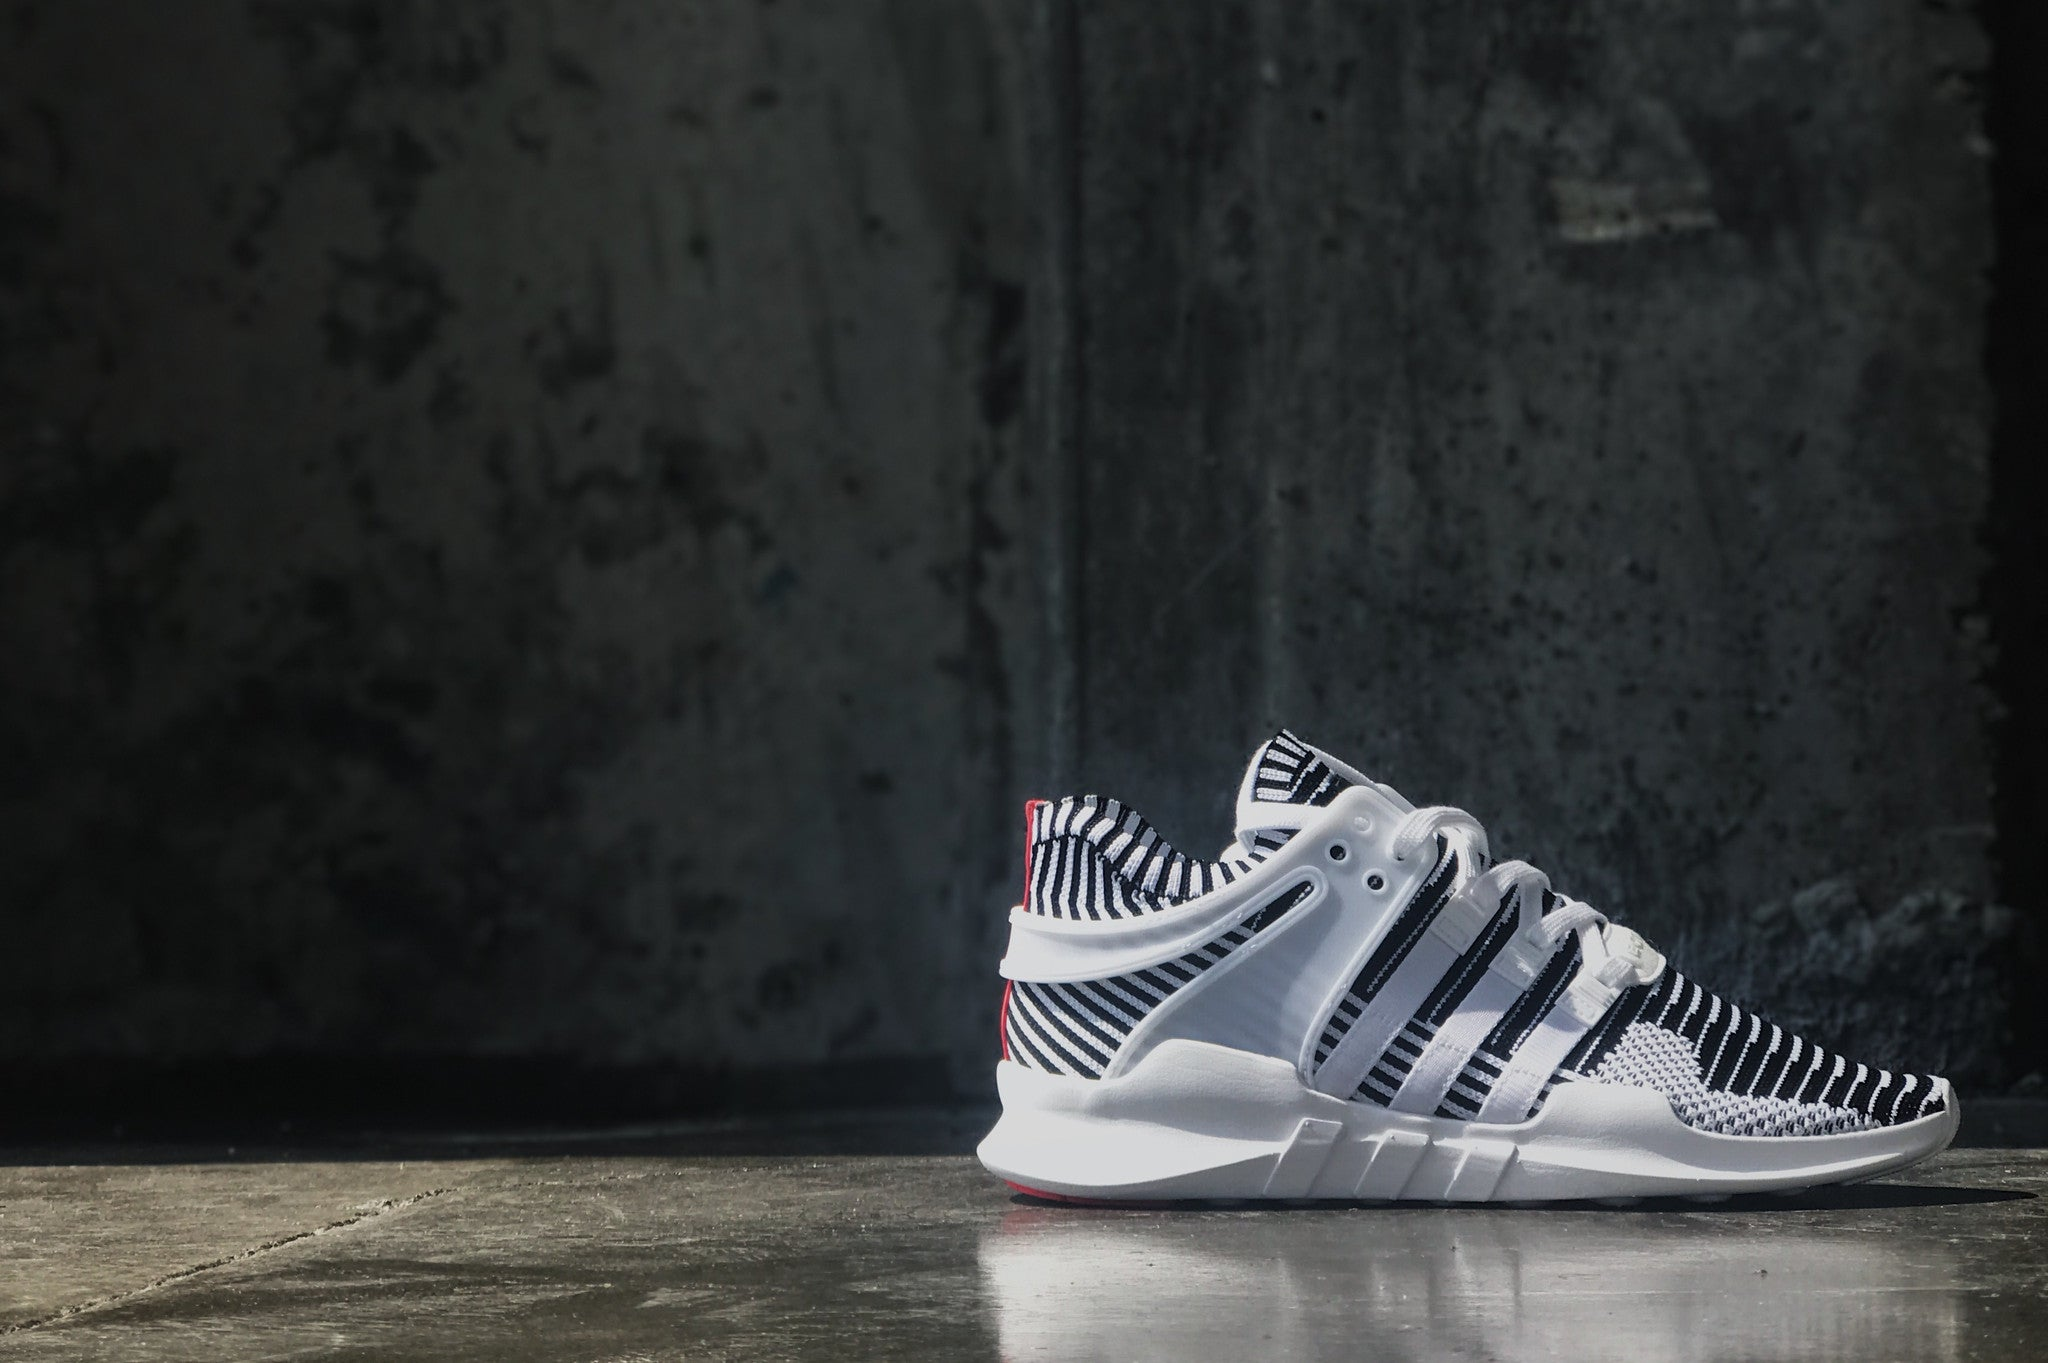 online store 65420 32227 The adidas EQT Support ADV Primeknit will release on March 23, 2017 at  ROOTED, in-store only in Nashville, TN at 1100am CST. 140